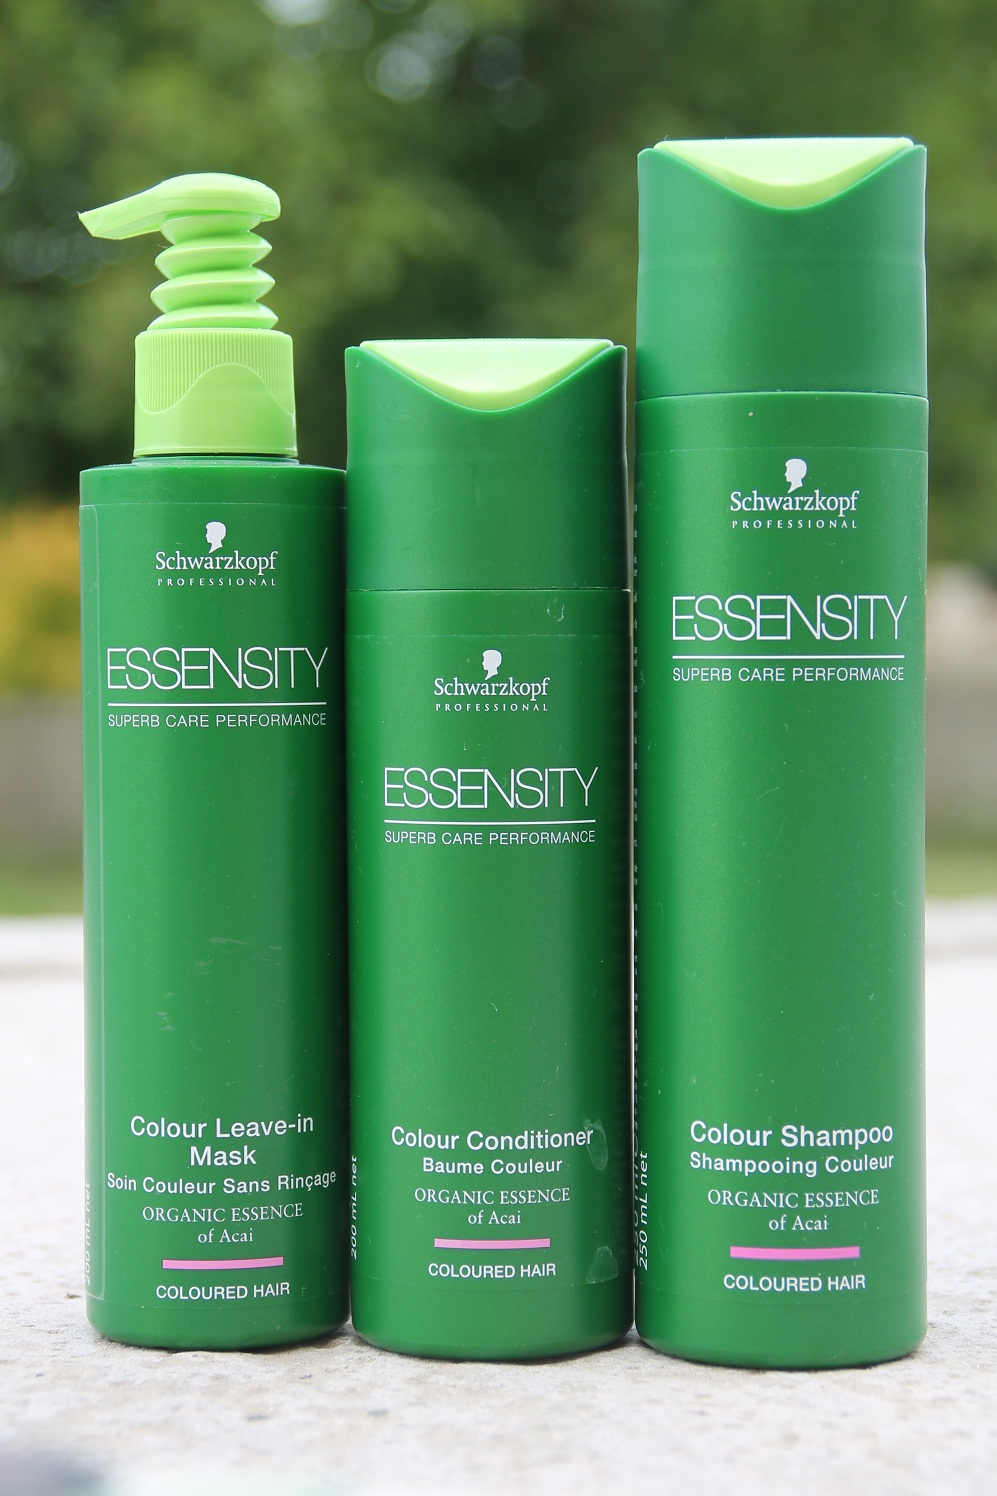 schwarzkopf essensity how to use